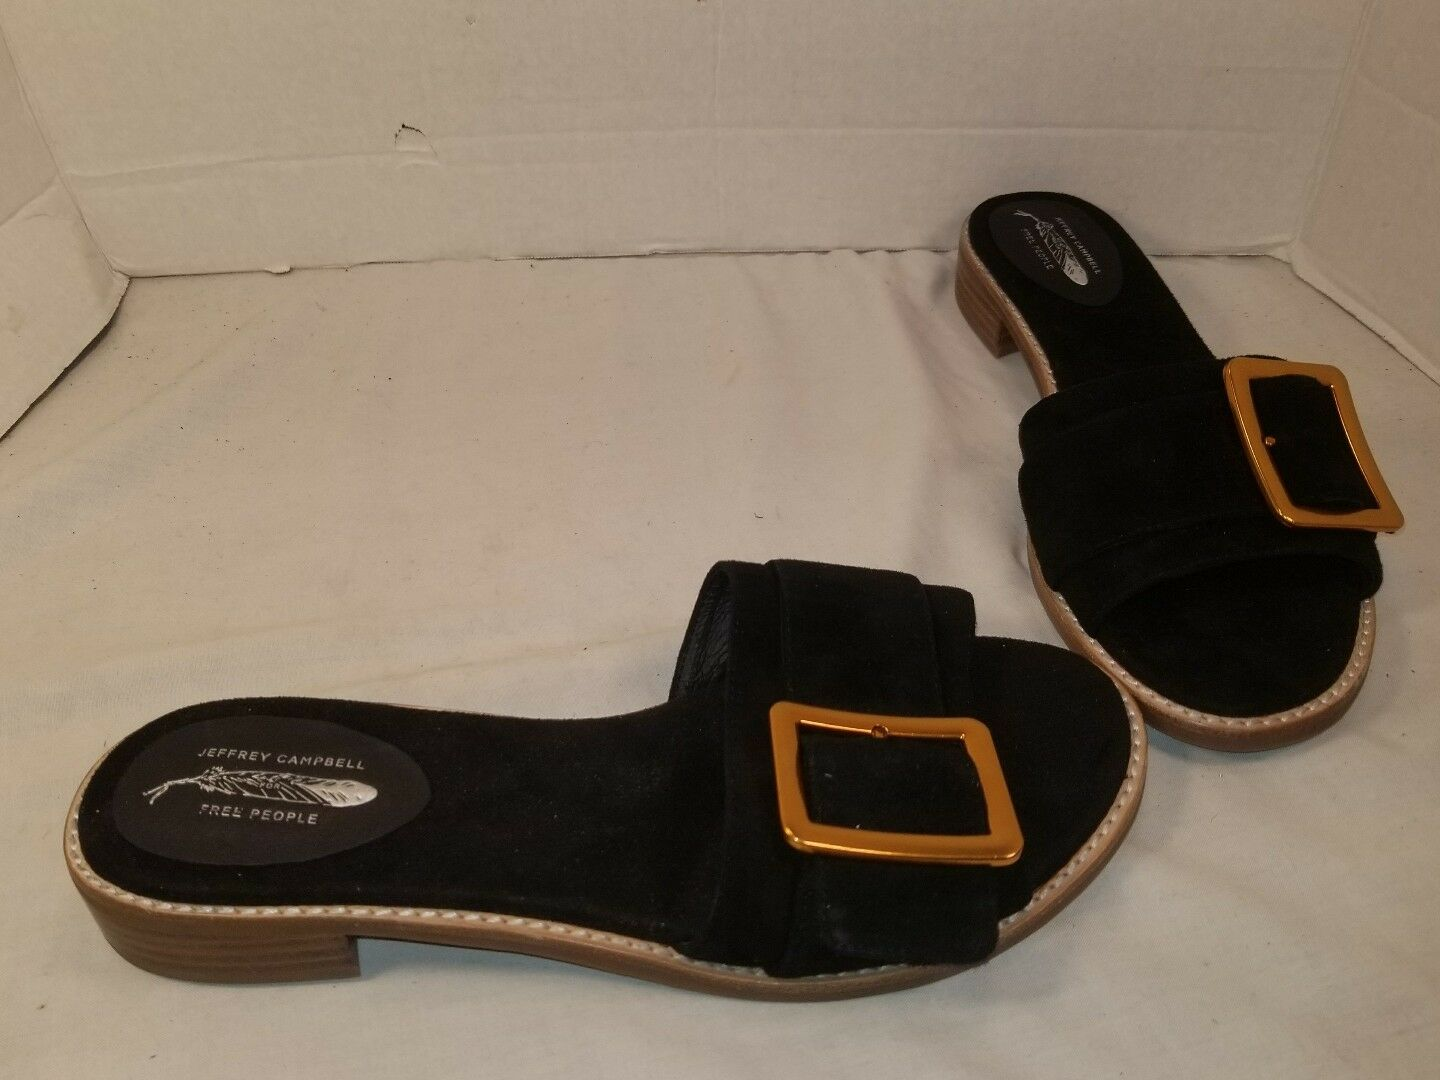 NEW FREE PEOPLE X JEFFREY CAMPBELL DREW BLACK SUEDE SLIDE SANDALS US 10